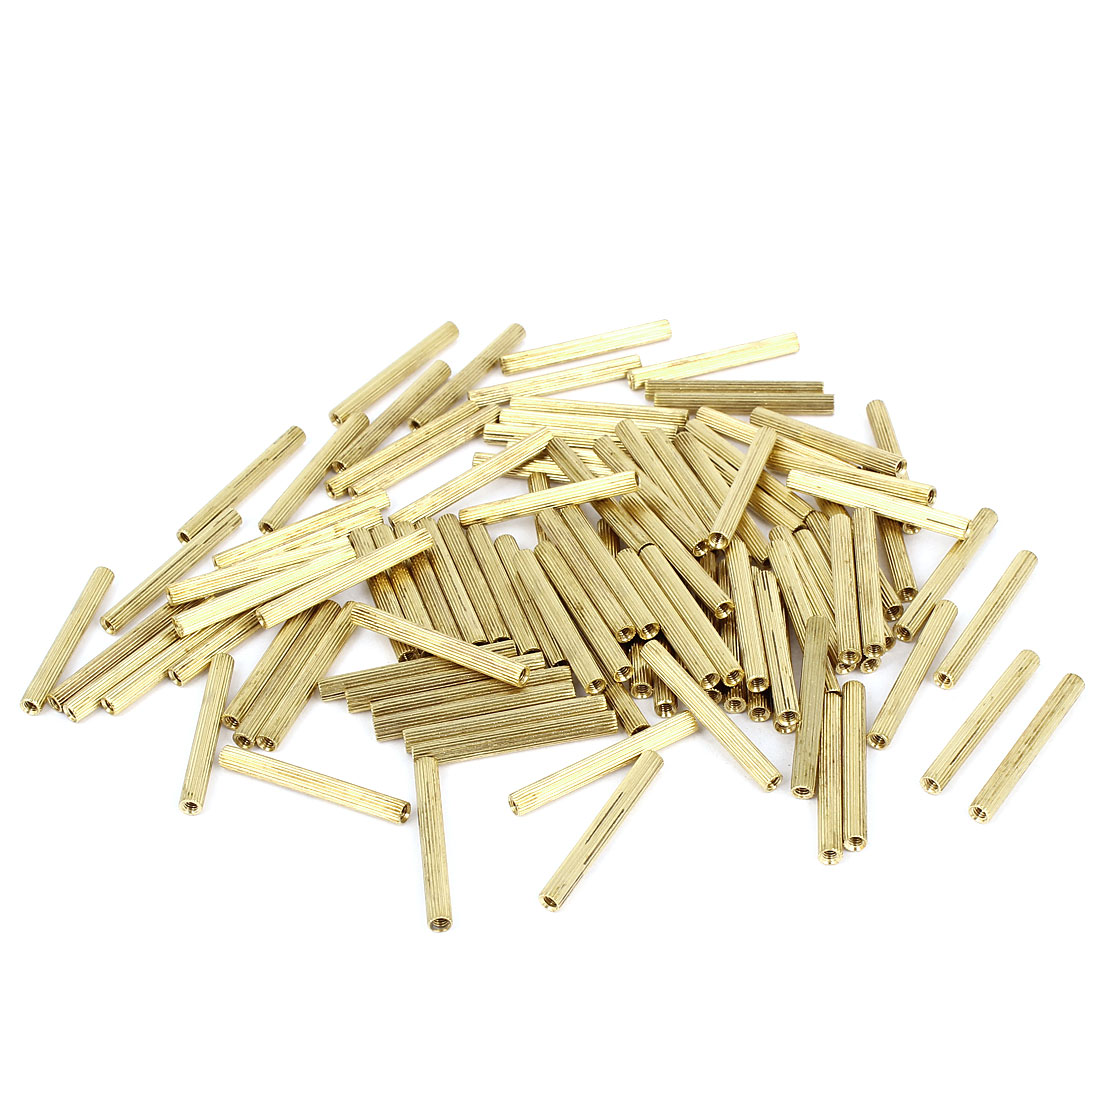 100 Pcs Female Threaded Pillars Brass Standoff Spacer Gold Tone M2x27mm